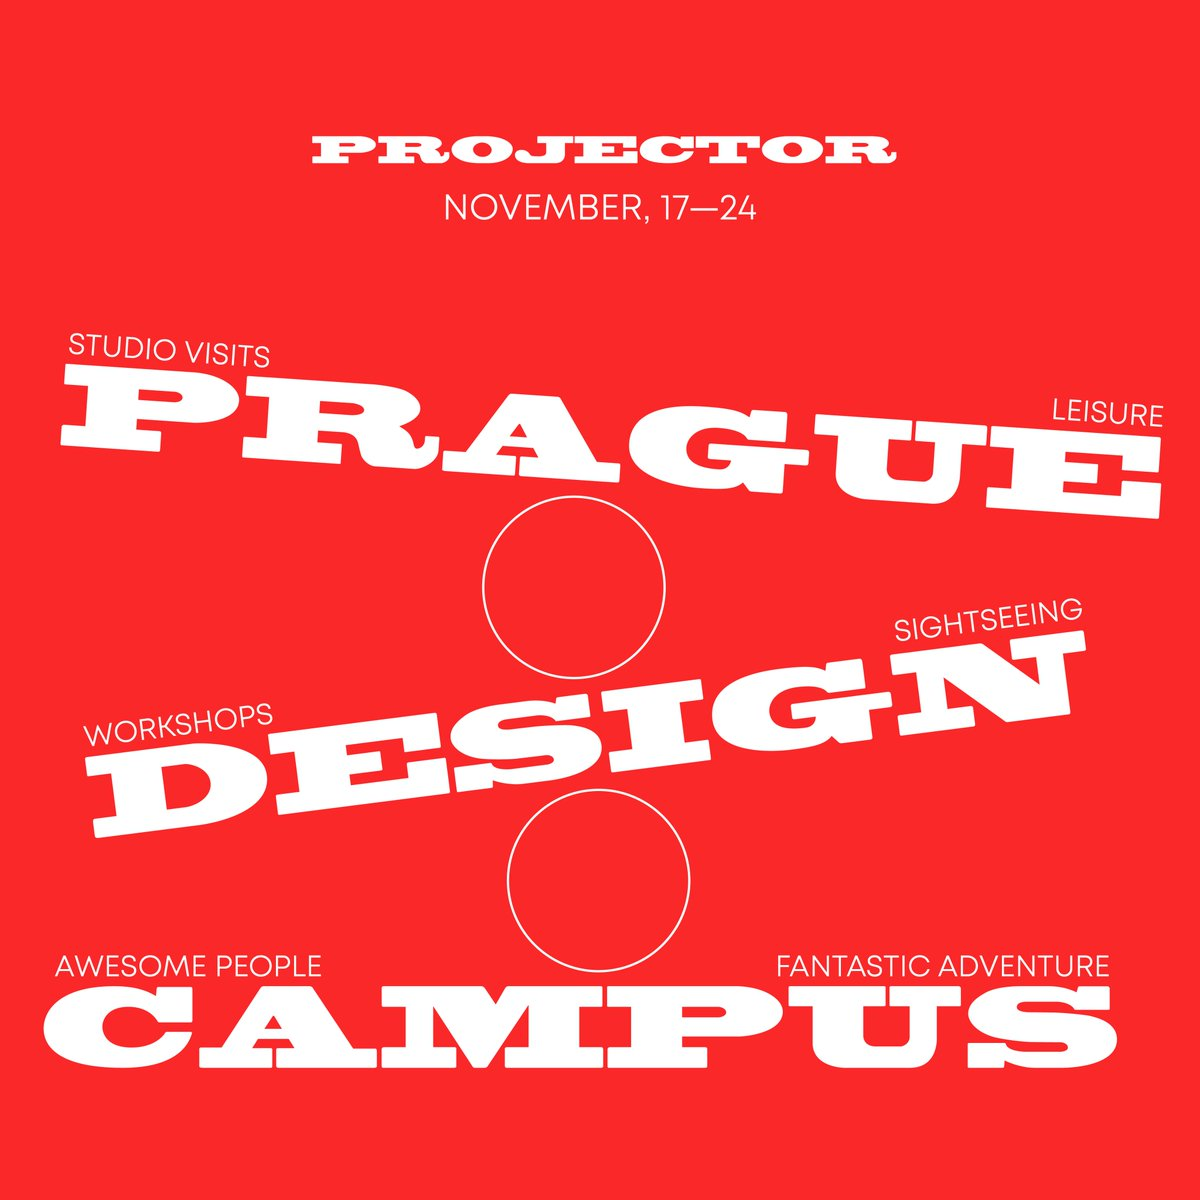 From 17 to 24th of November we are going to Prague! Designers, art directors and creatives — join us for a fun week full of intensive workshops and lectures, exclusive office tours, informal meetings with local designers and a lot of beer. Few spots left: https://t.co/fe3ETOzM3r https://t.co/M4jJeuZN1N